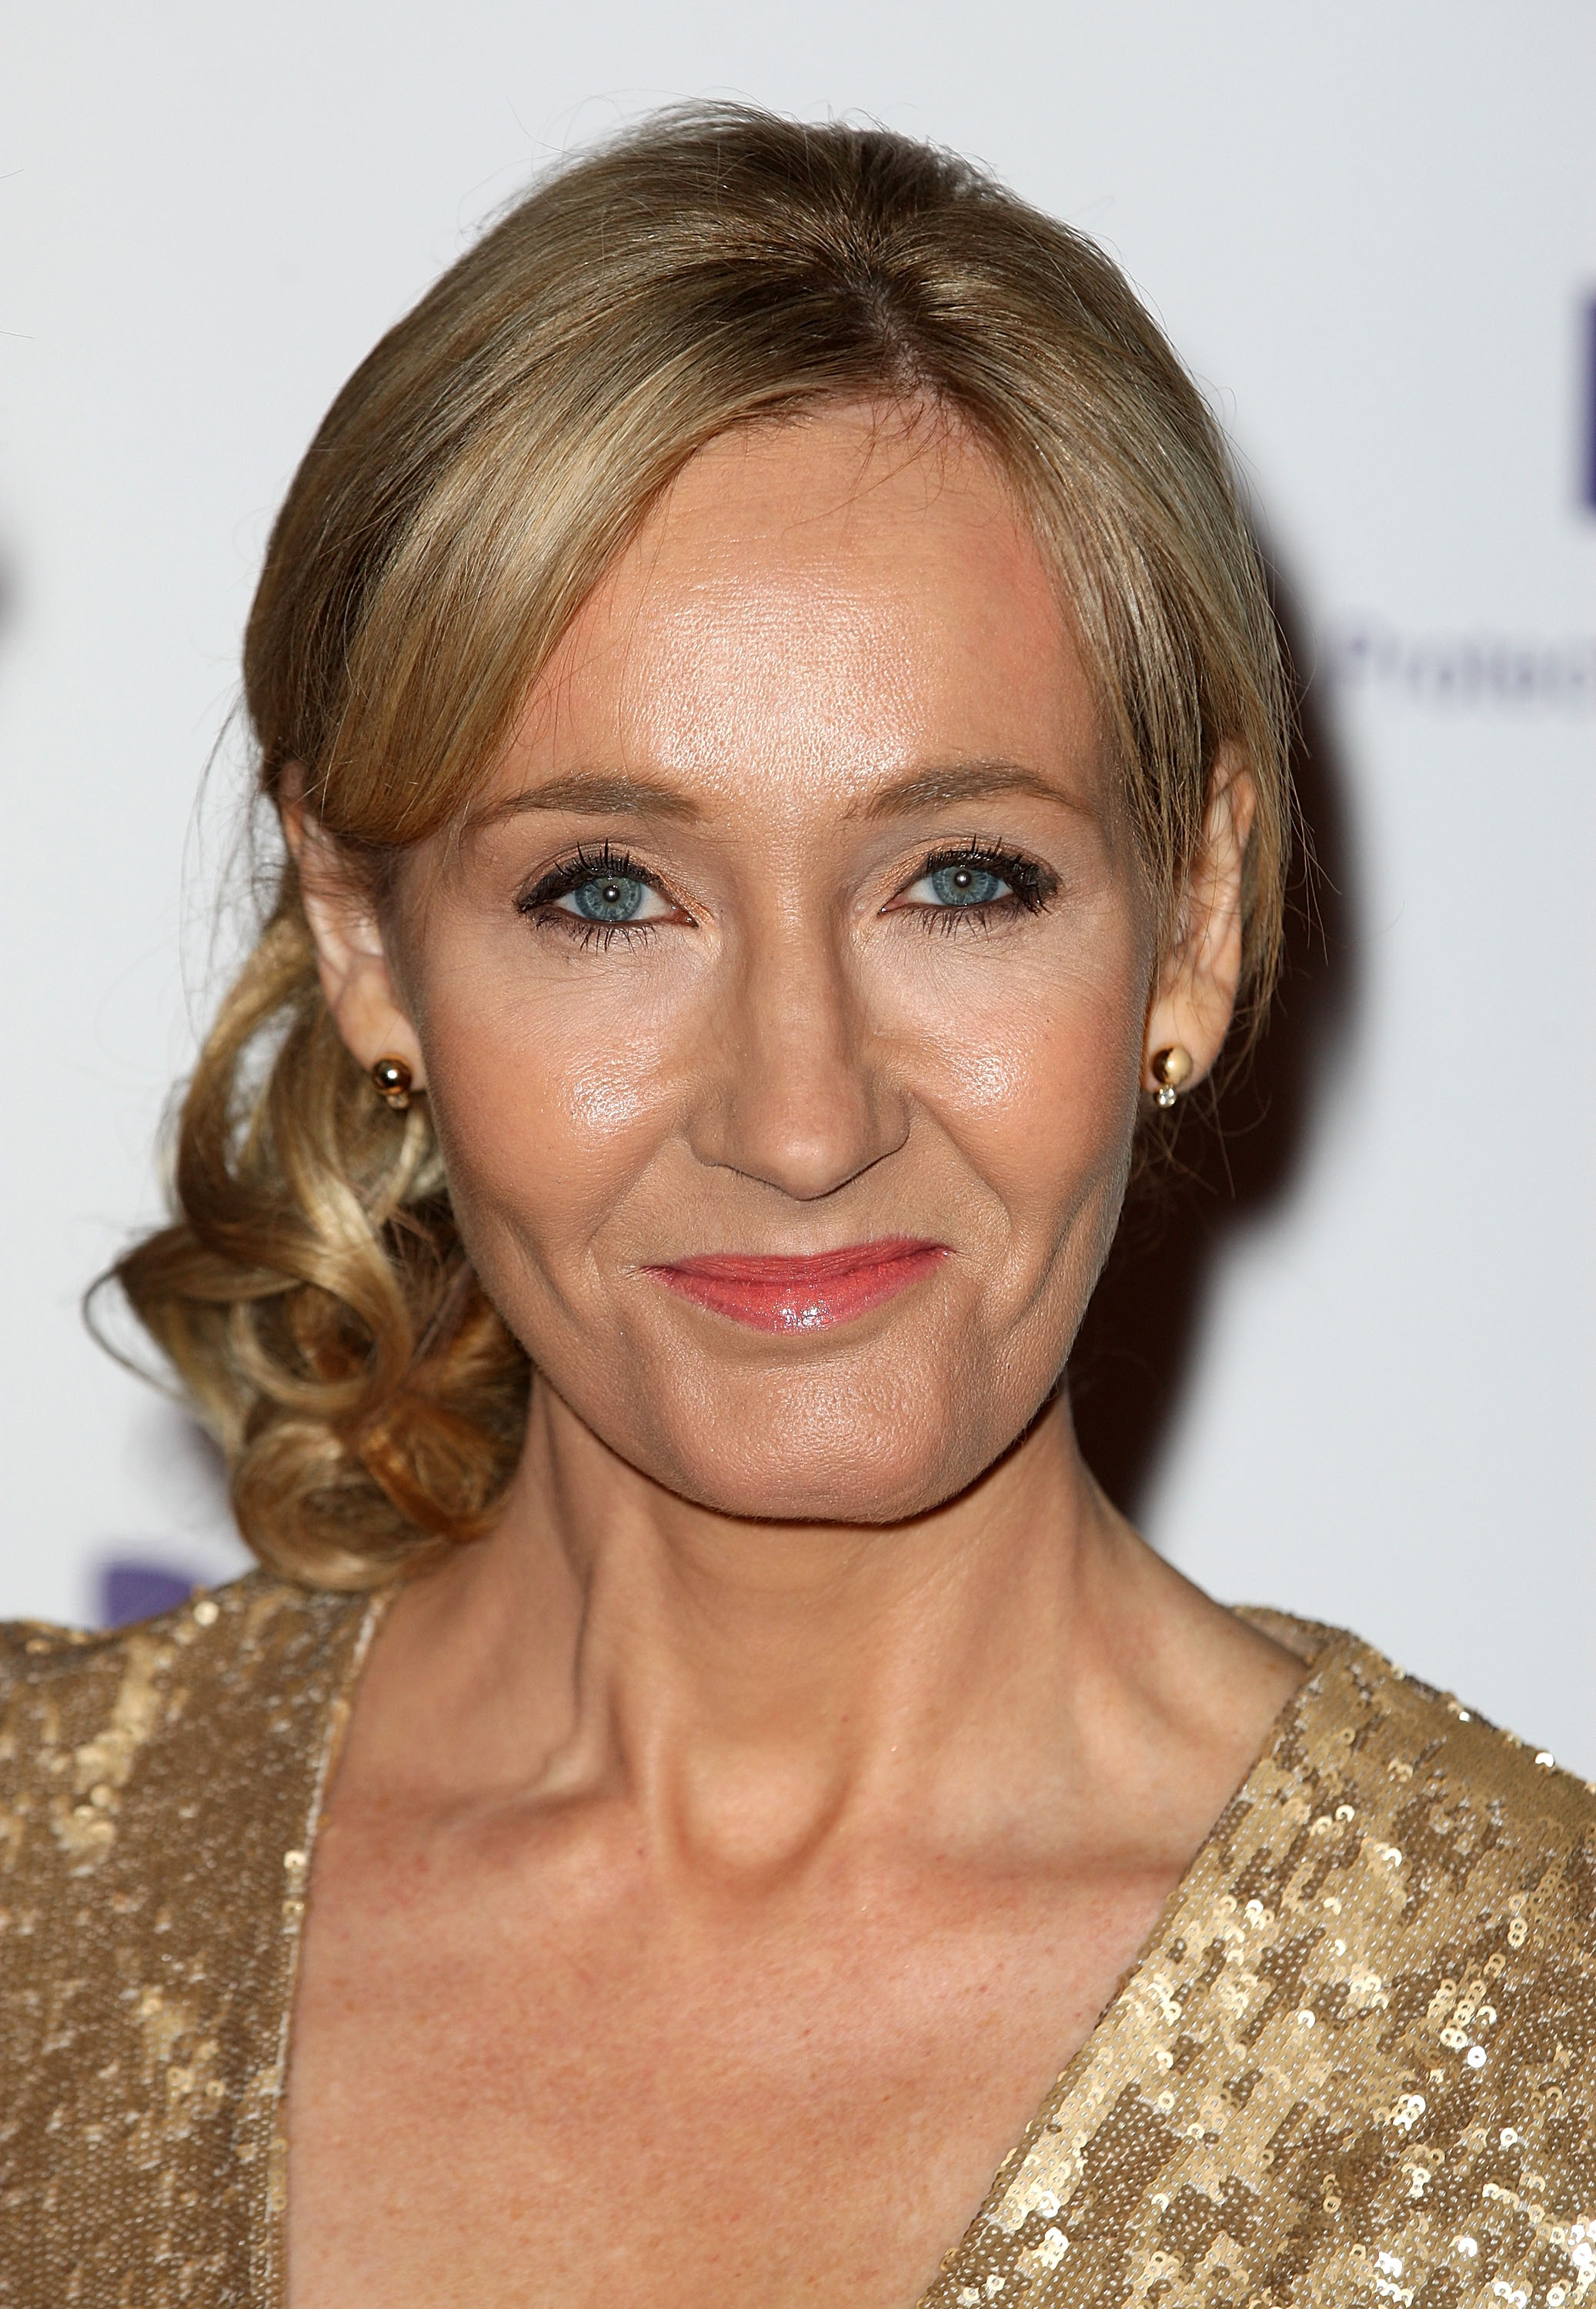 J.K. Rowling at a charity event at Warner Bros Studios in London in 2013.